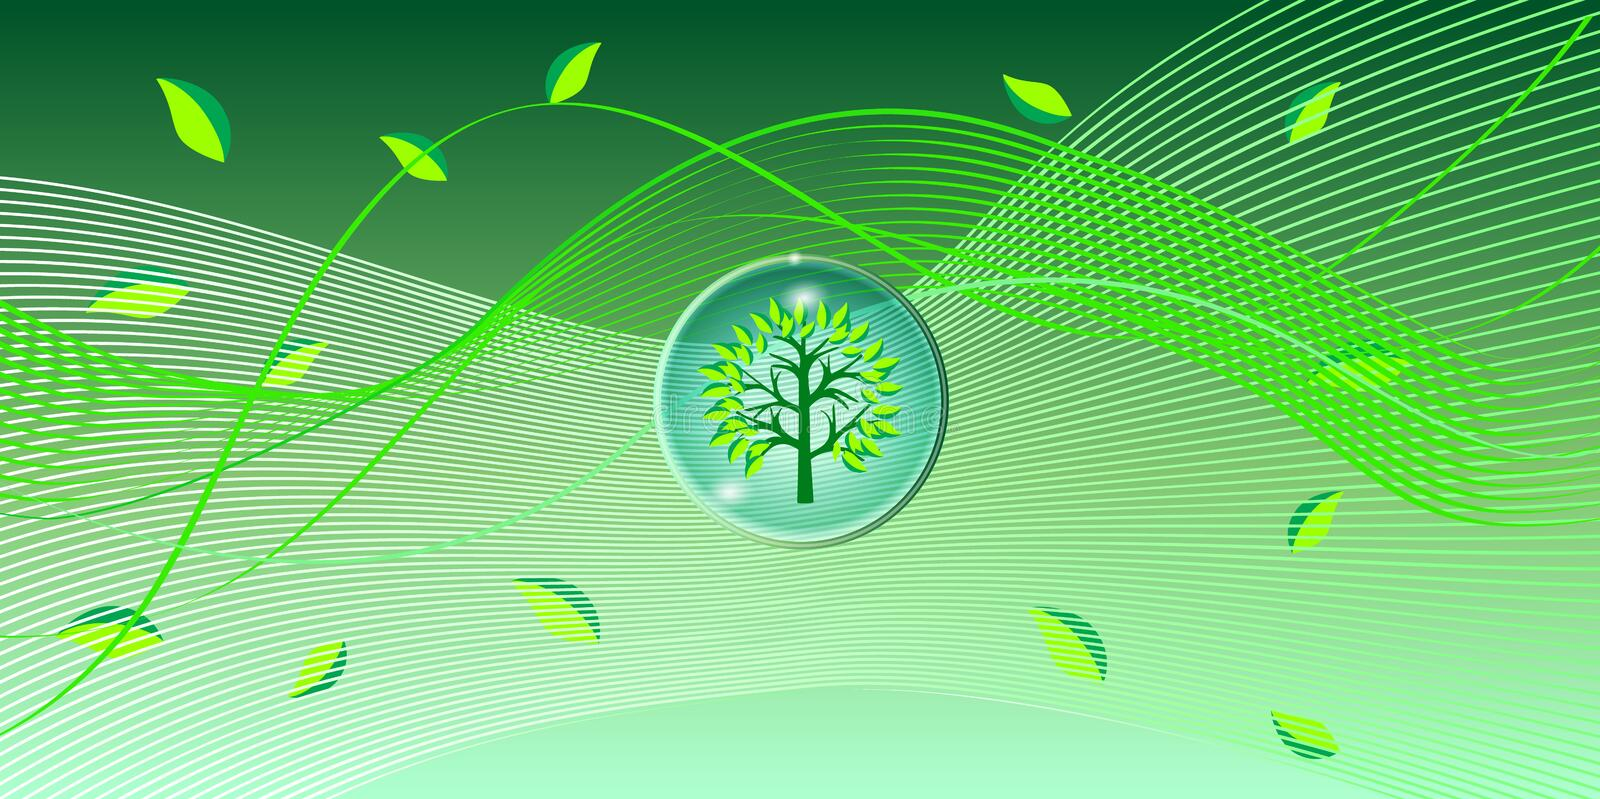 Green leaves wave background. Vector. Digital illustration. Green leaves of the trees on colorful abstract wave background. For art, print, web, wallpaper stock illustration